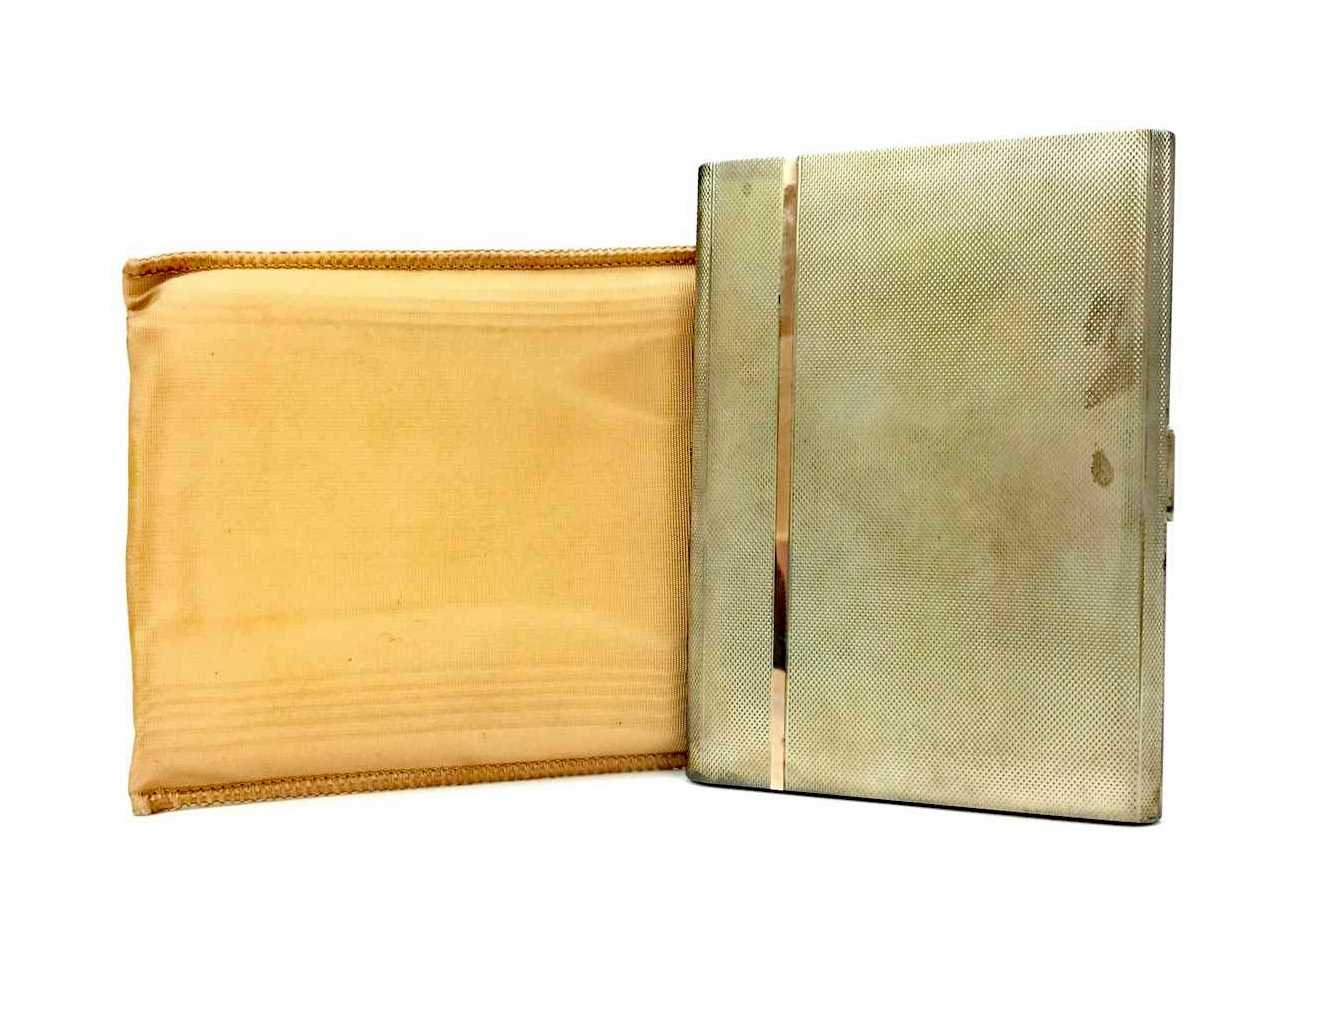 Lot 901 - AN EARLY 20TH CENTURY SILVER CIGARETTE CASE